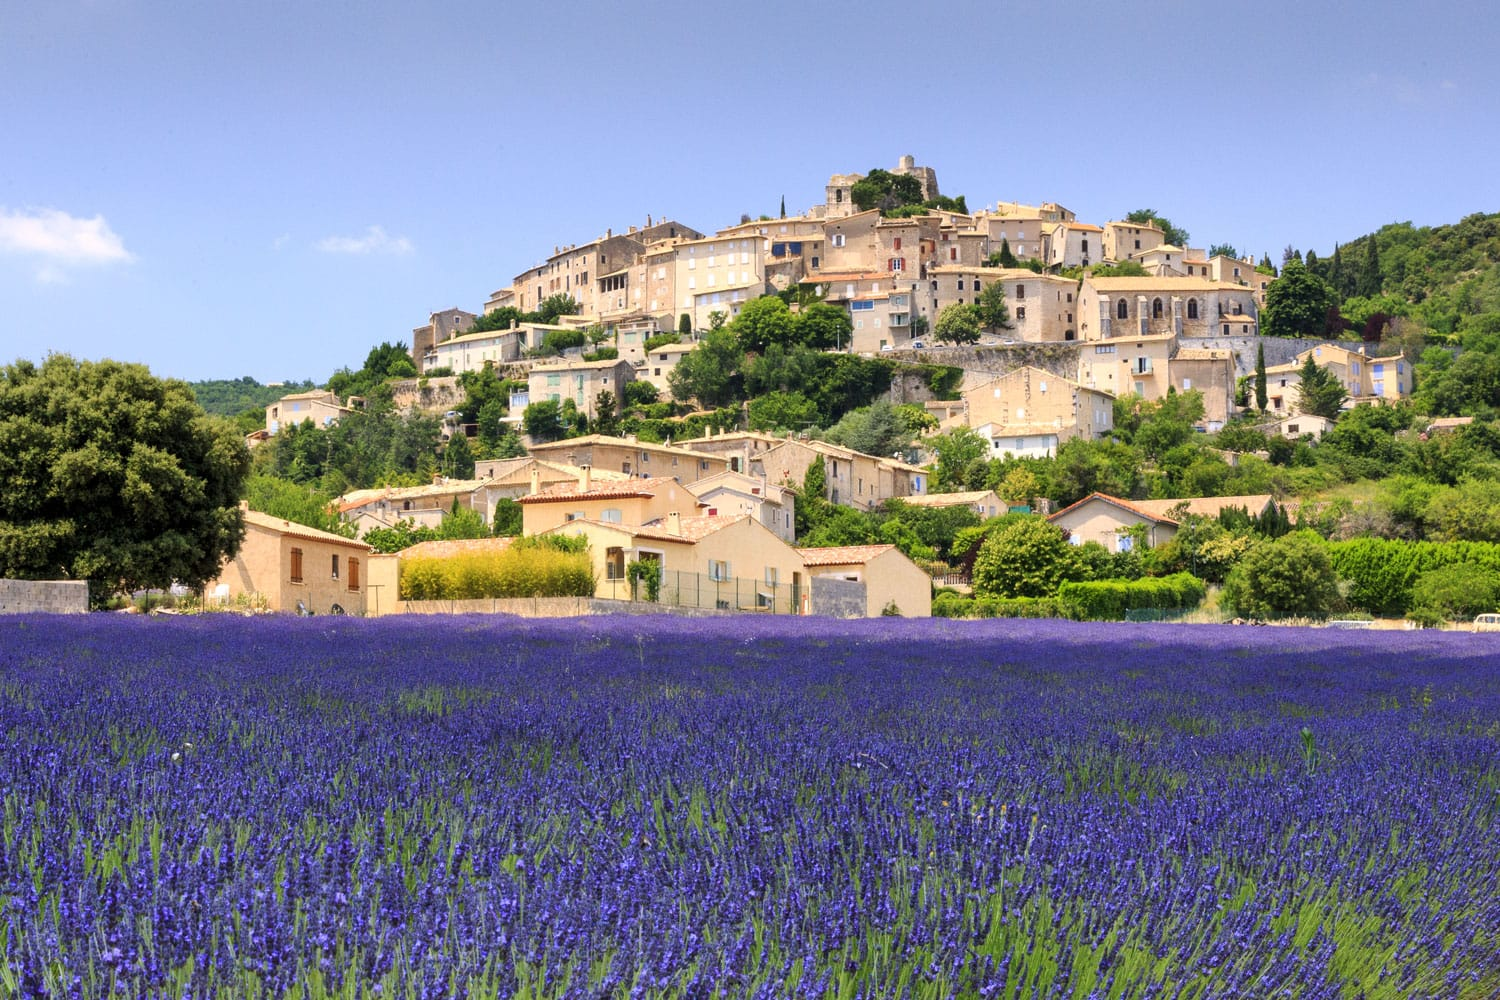 Lavender field and Simiane la rotonde village in Provence France